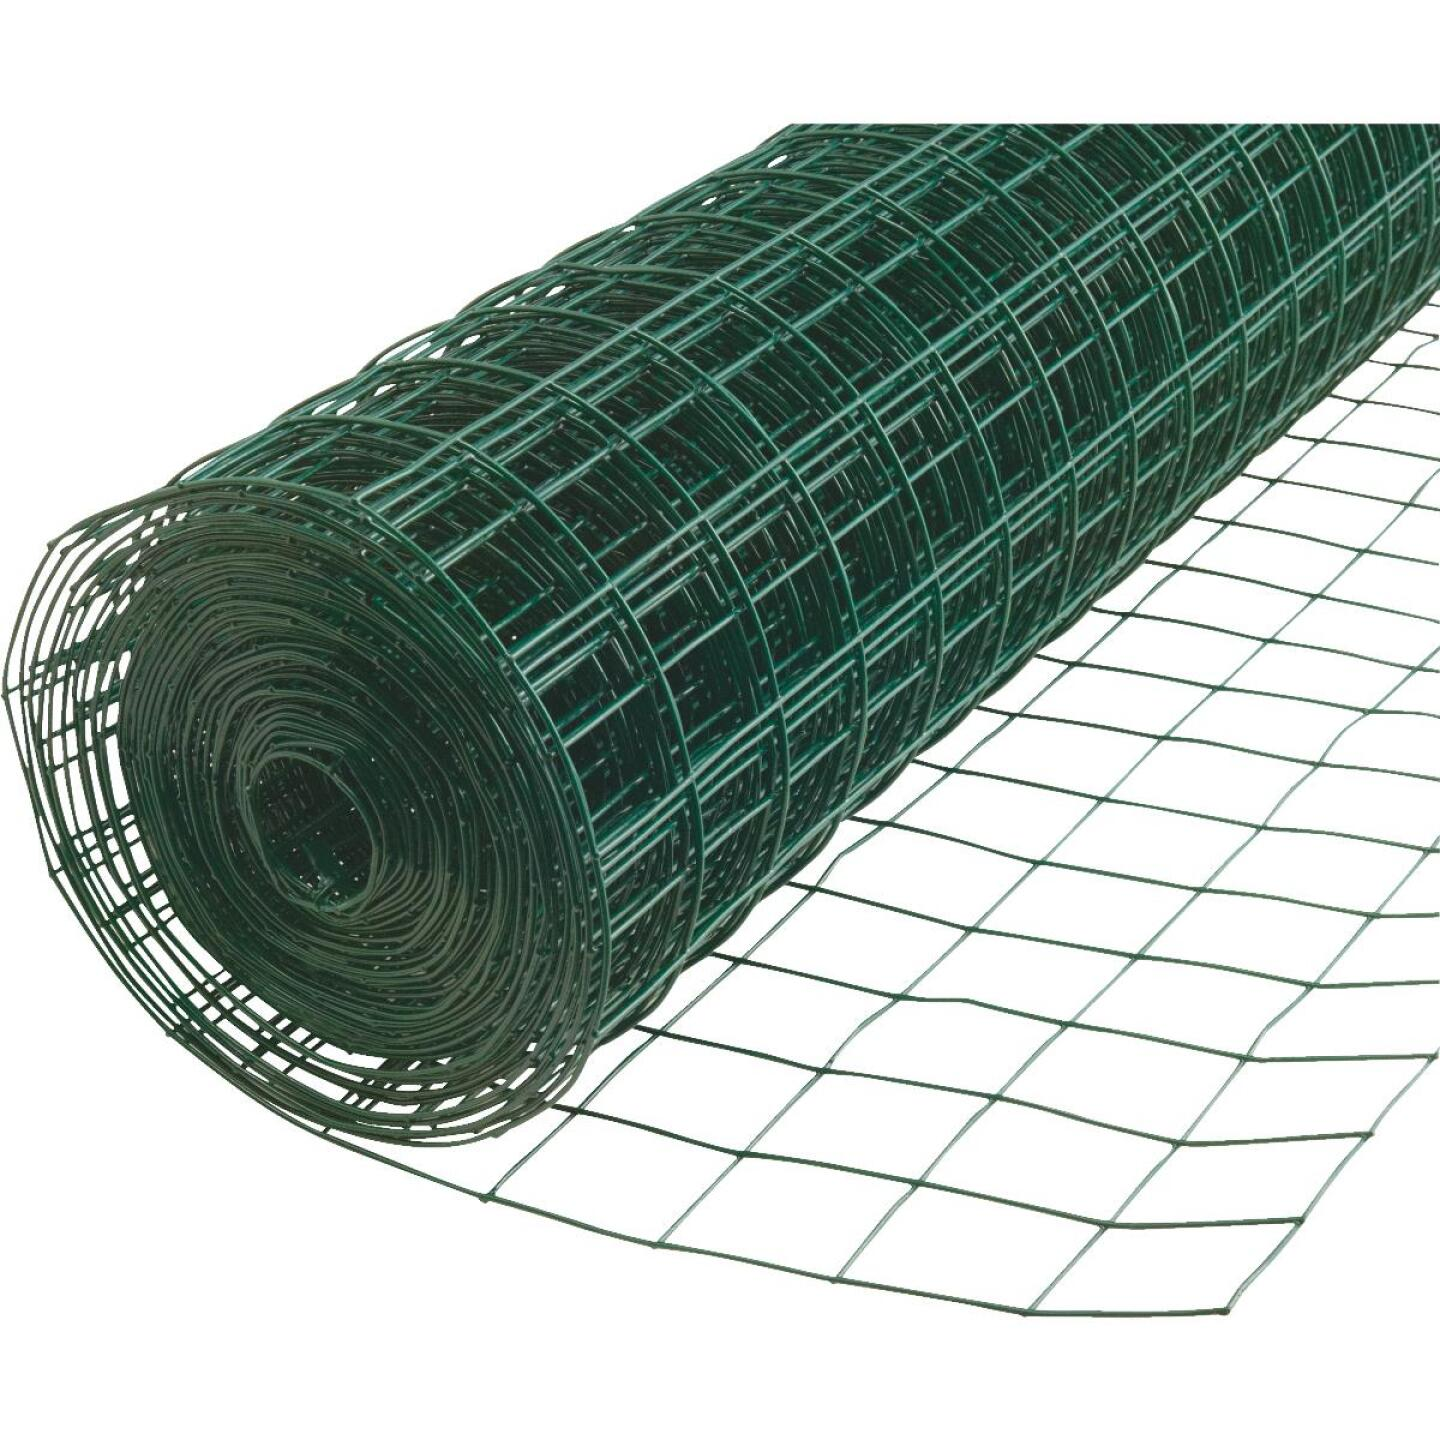 Do it 48 In. x 50 Ft. (2x2-1/2) Vinyl-Coated Galvanized Welded Wire Fence Image 1